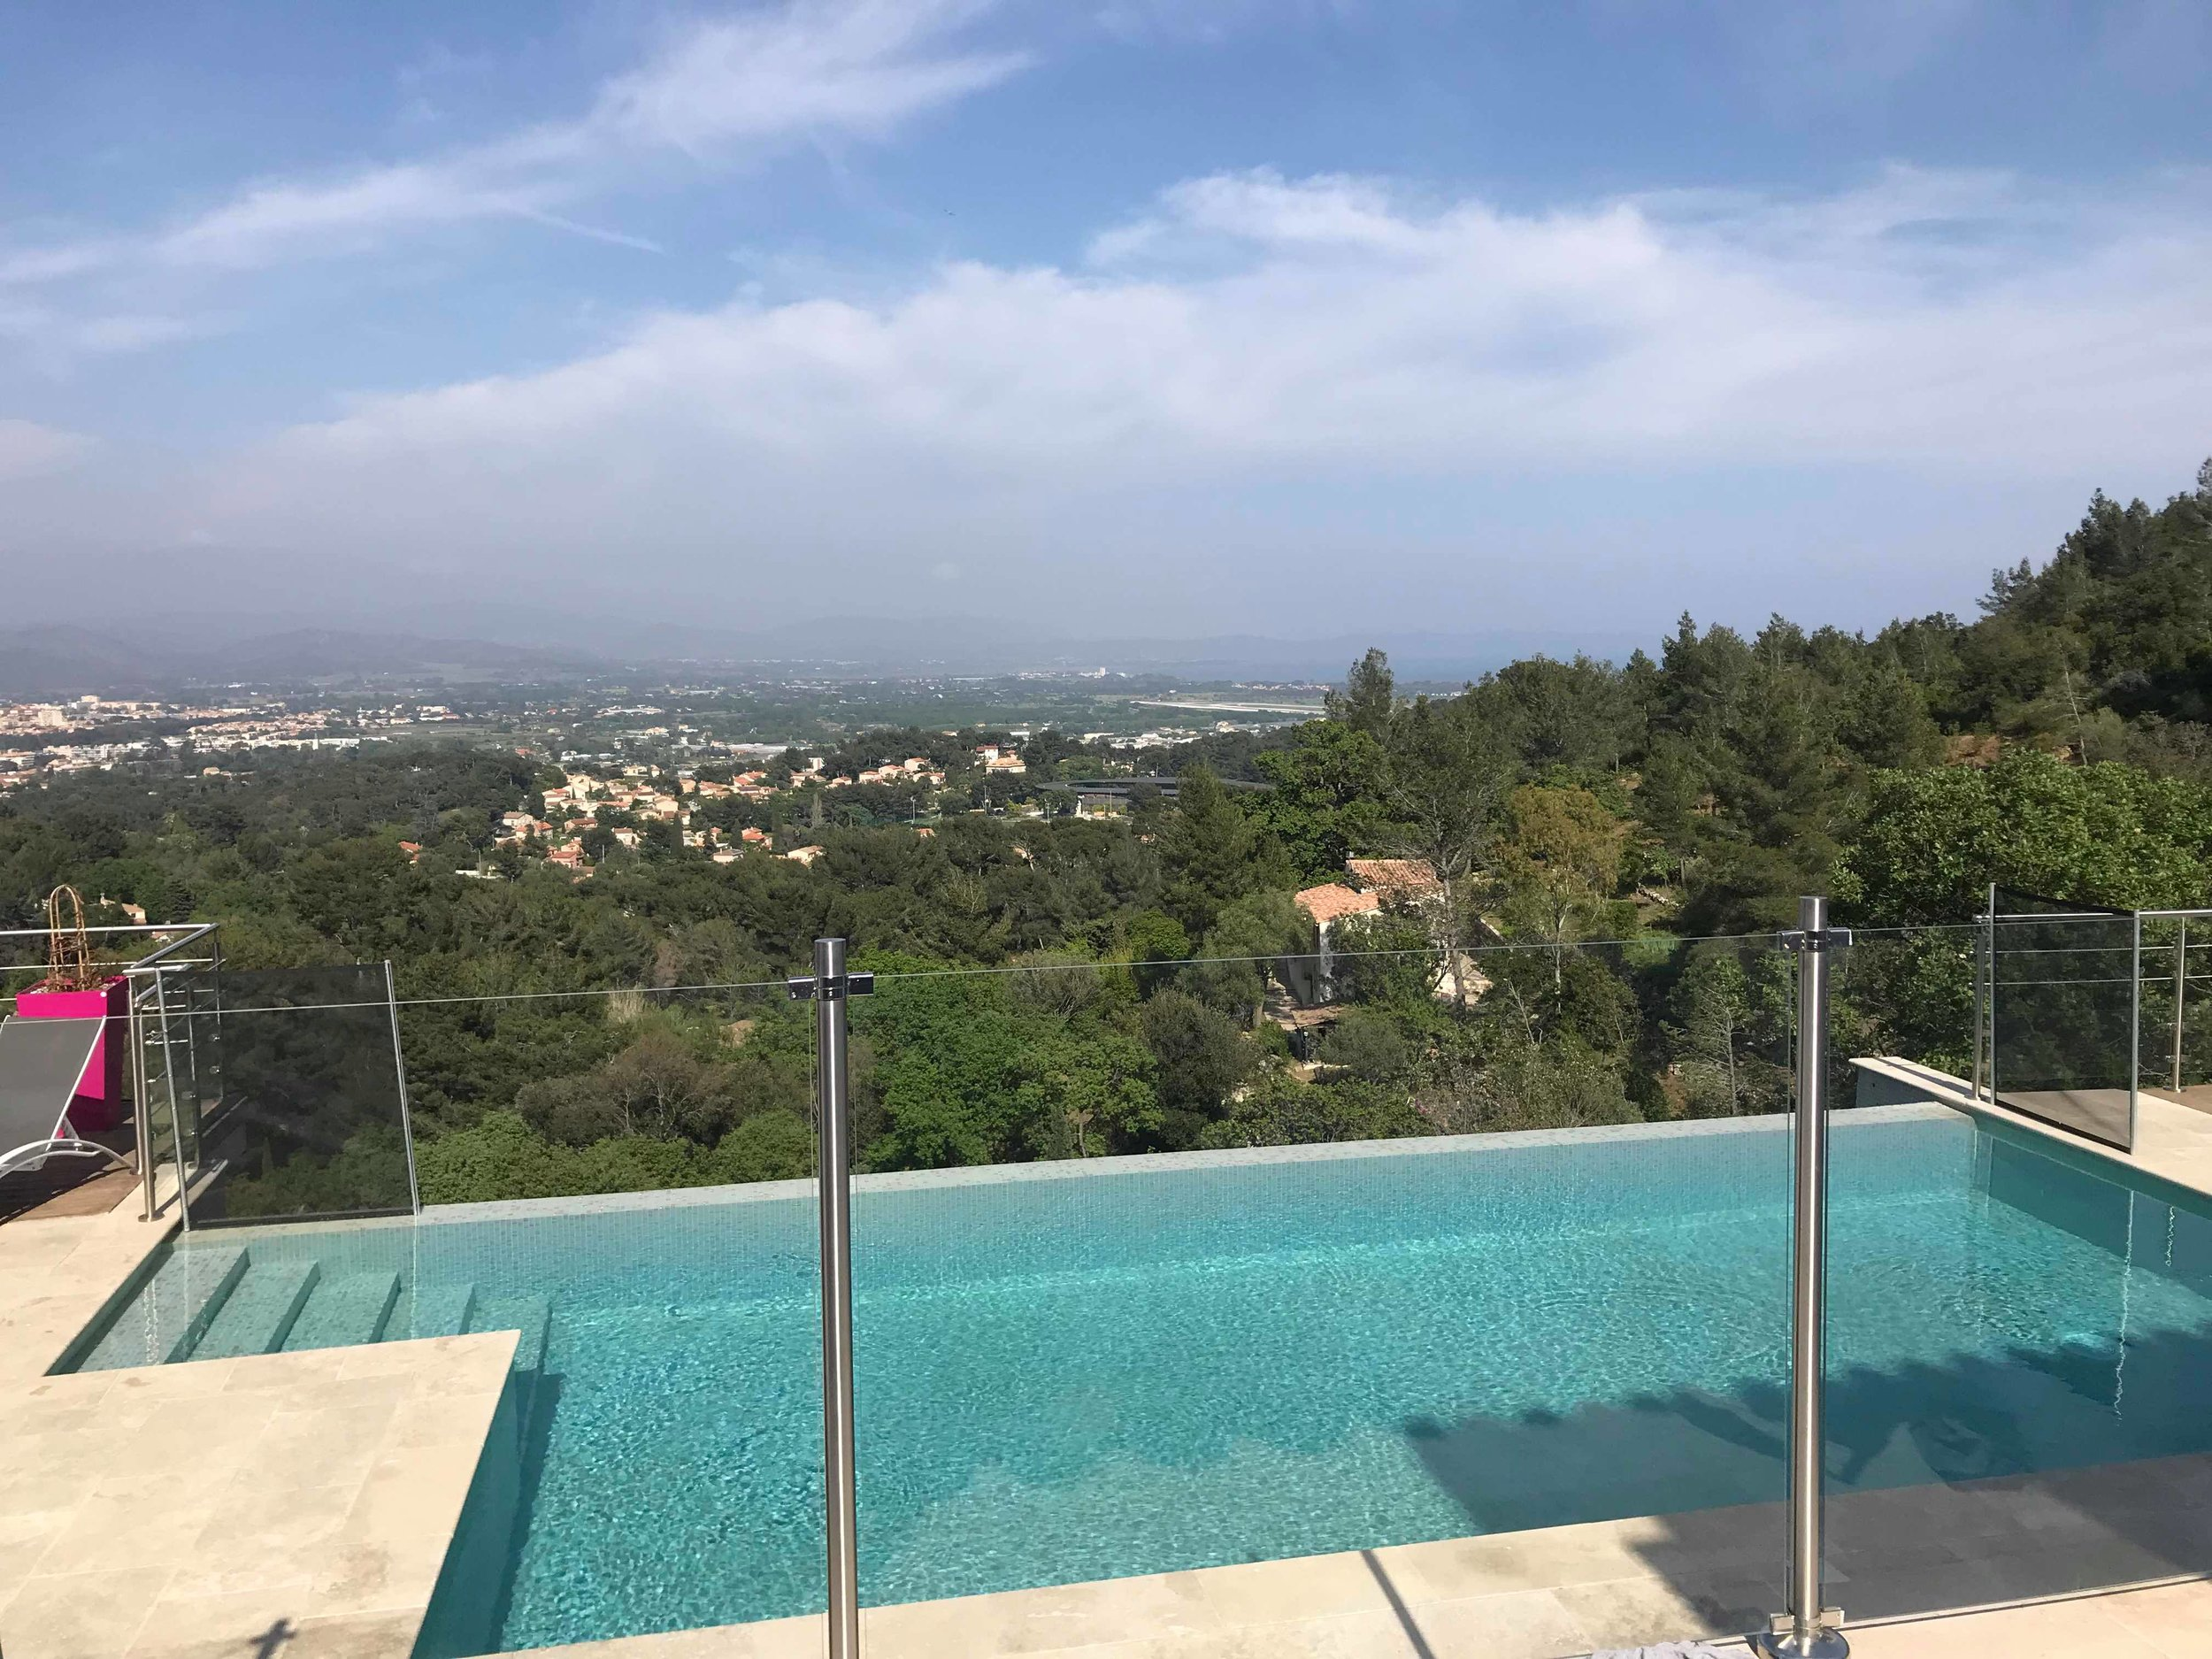 Meanwhile on the accommodation front we managed to bag ourselves an amazing villa in the hills for a ridiculously low price. It was amazing been ale to go for a morning swim everyday ready for sailing!